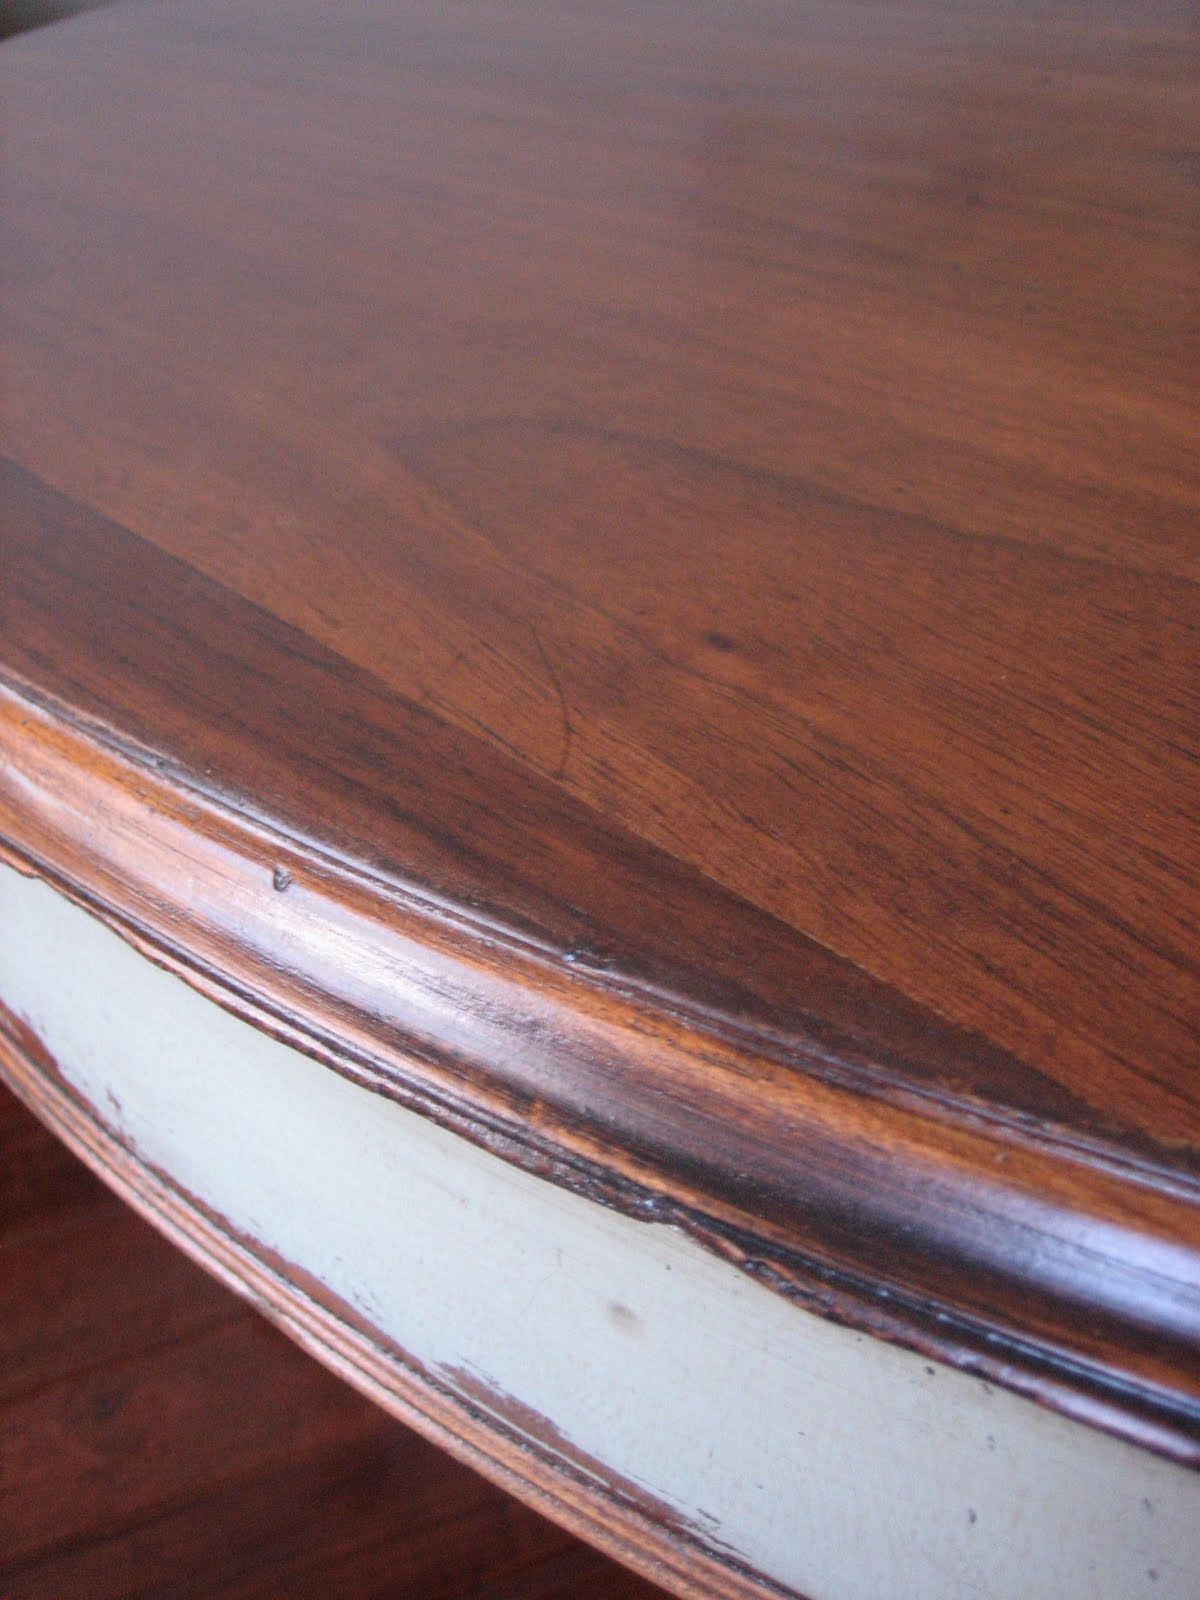 European Paint Finishes July 2011 : EPF Primtable017 from europaintfinishes.blogspot.ca size 1200 x 1600 jpeg 161kB